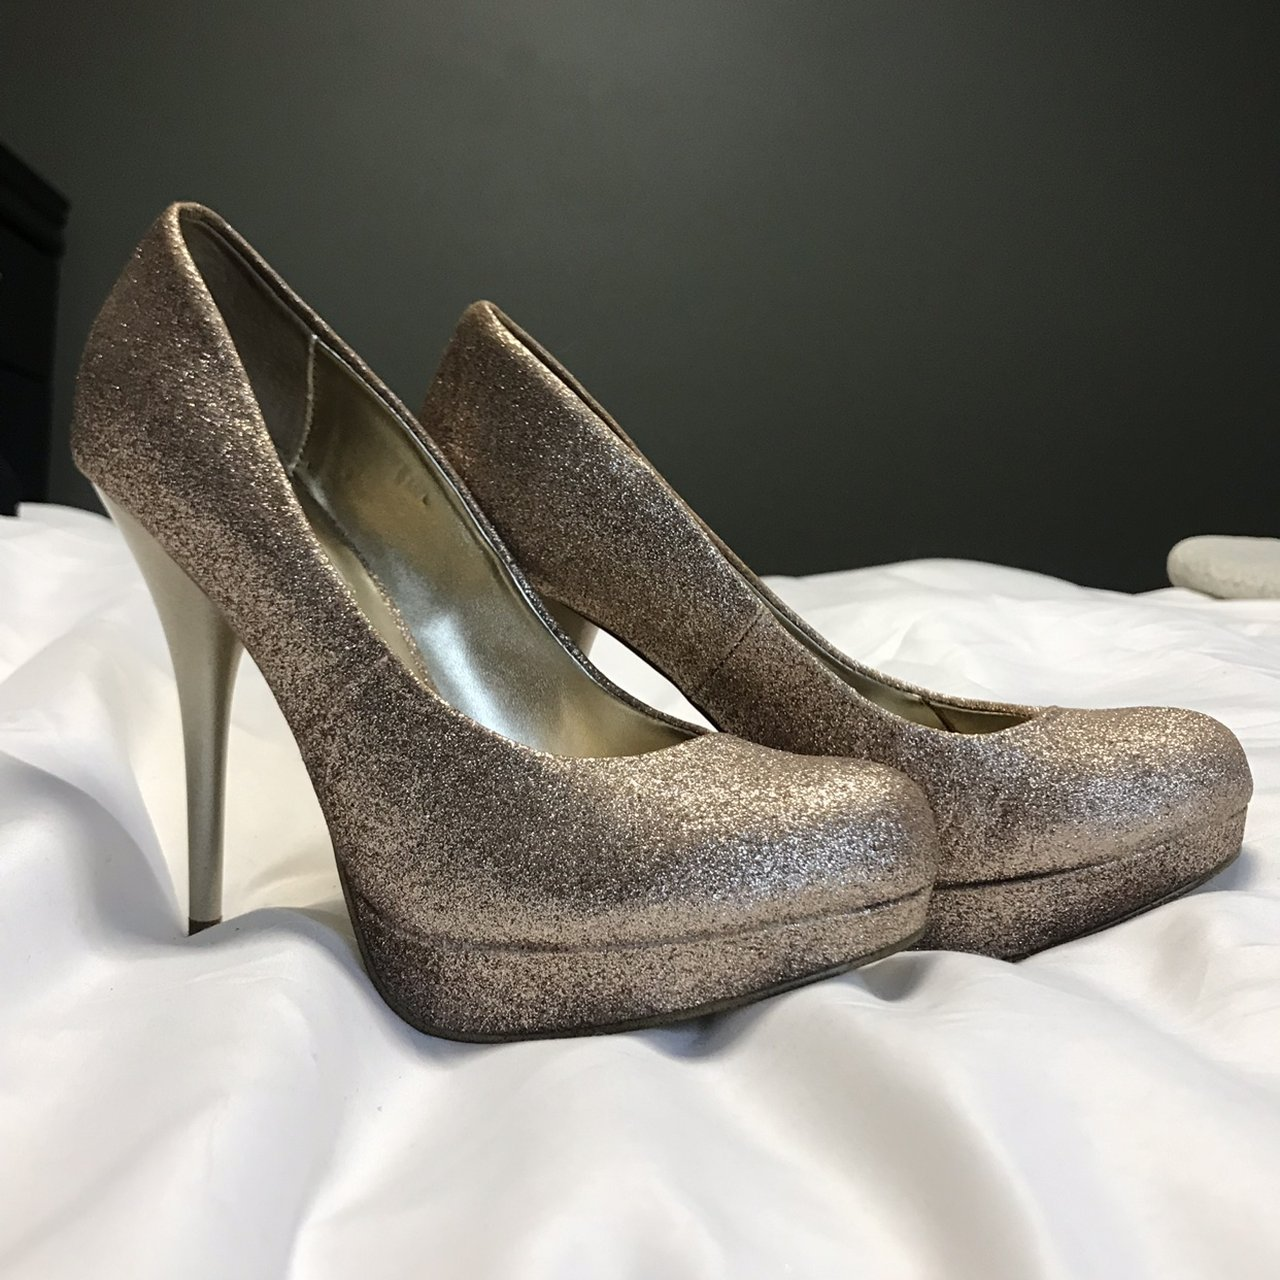 513747838cc2 @aamberhinds. 7 months ago. Oxford, United States. Steve Madden gold glitter  heels.